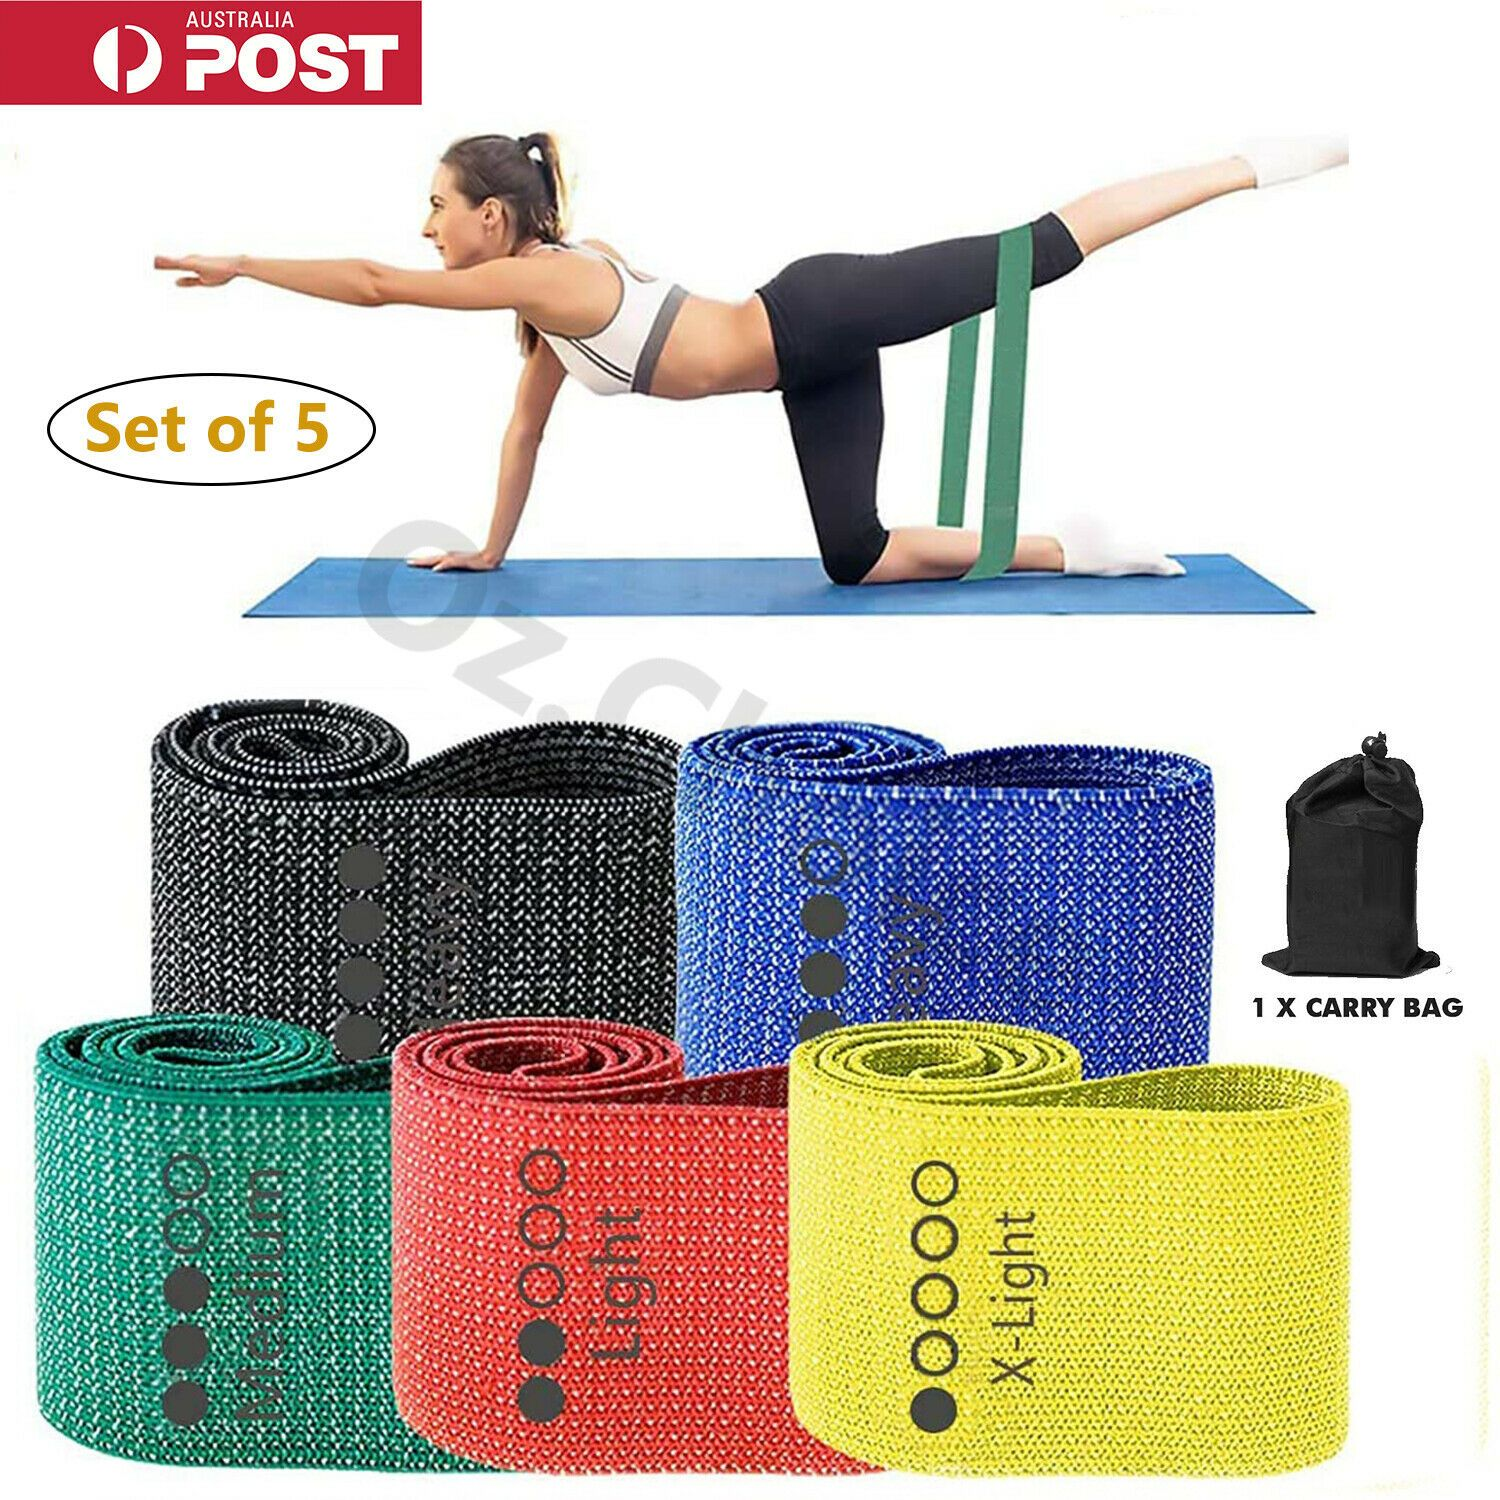 5PC Fabric Resistance Booty Bands Non Slip for Butt Legs Thighs Home Gym Workout